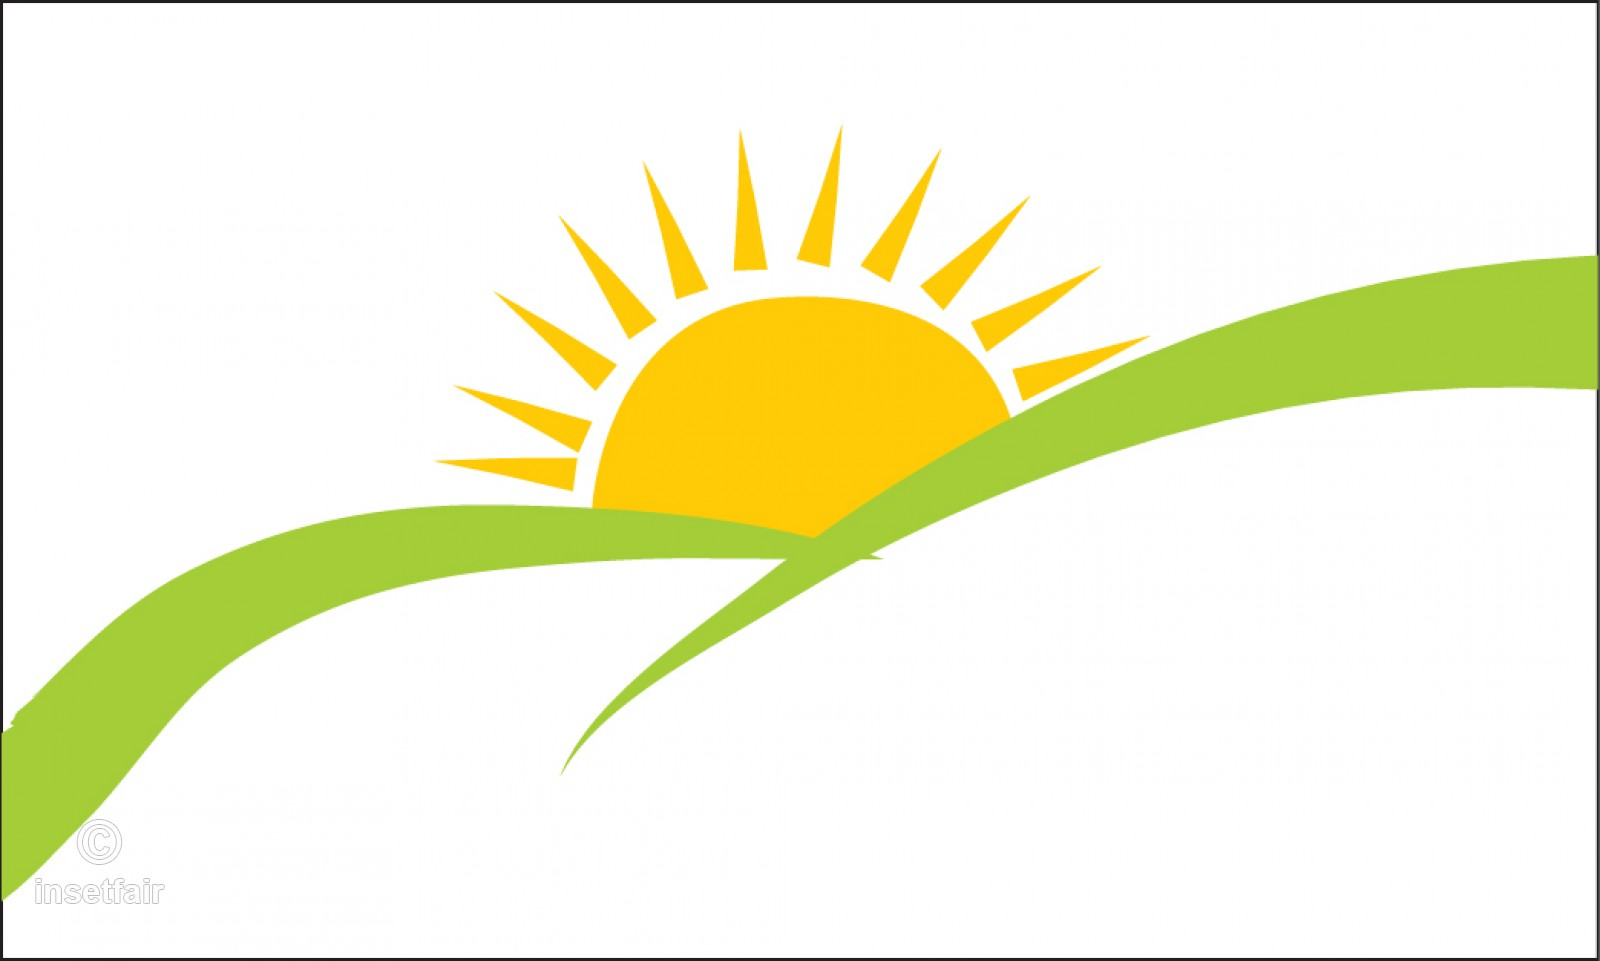 Simple Sunrise clipart.